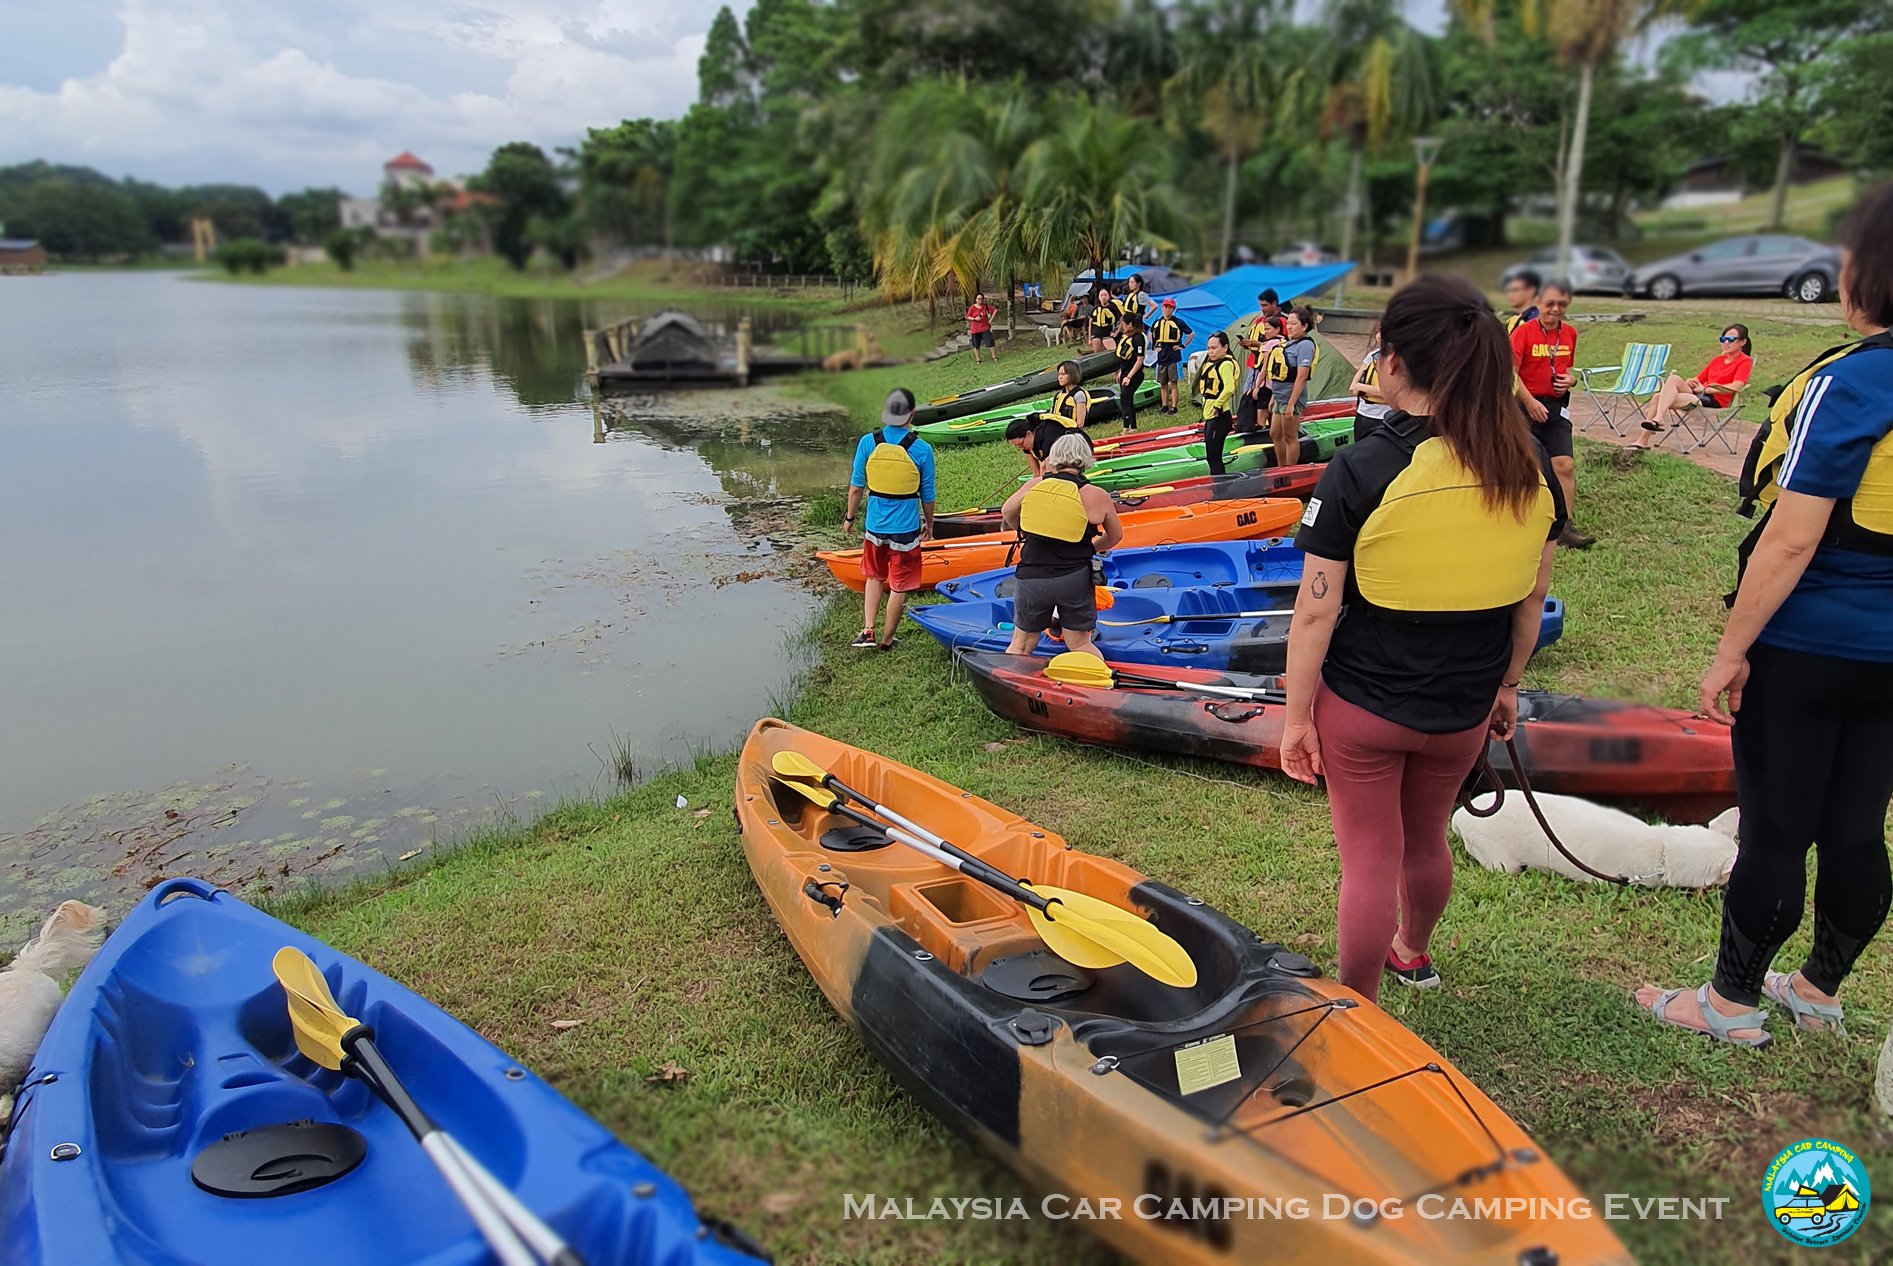 kayaking_dog_dog_camping_event_selangor_camping_site_malaysia_car_camping_private_event_organizer-4